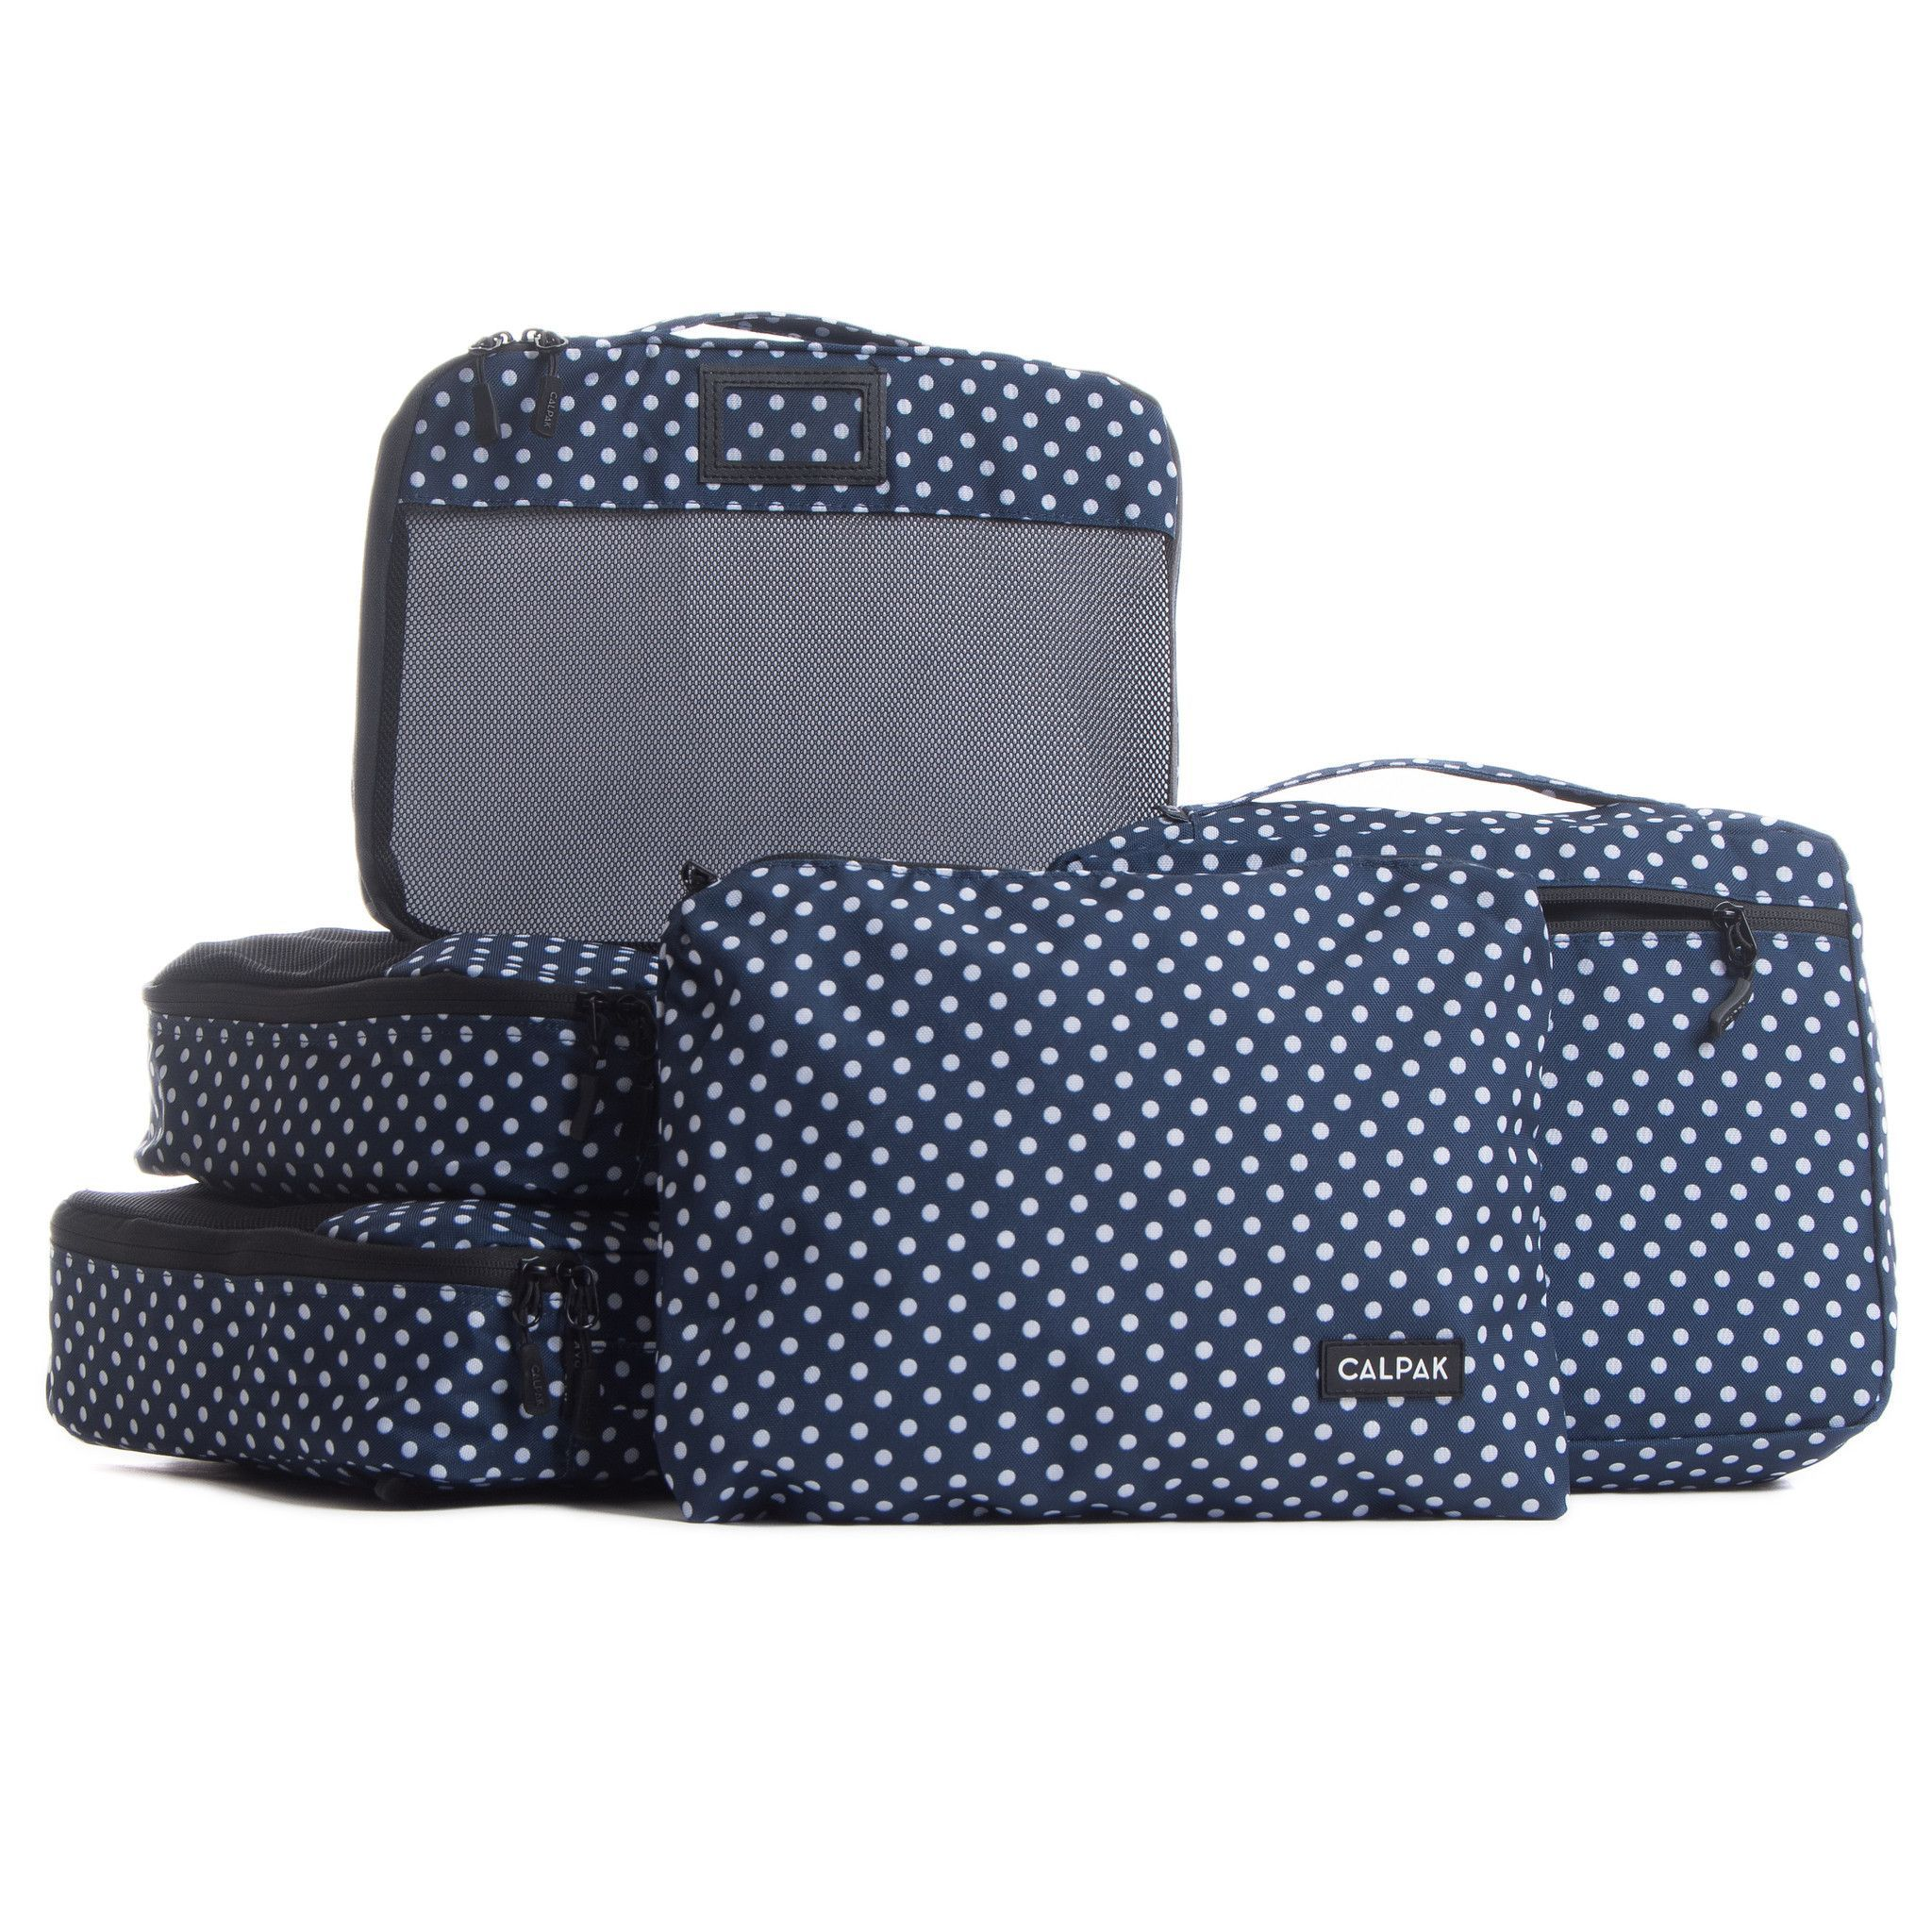 Grab CALPAK's packing cubes for your next getaway! Save space and time and stay organized! Fits perfectly into luggage, drawers, tote bags, gym bags, trunk space and more. F E A T U R E S - Packing cu